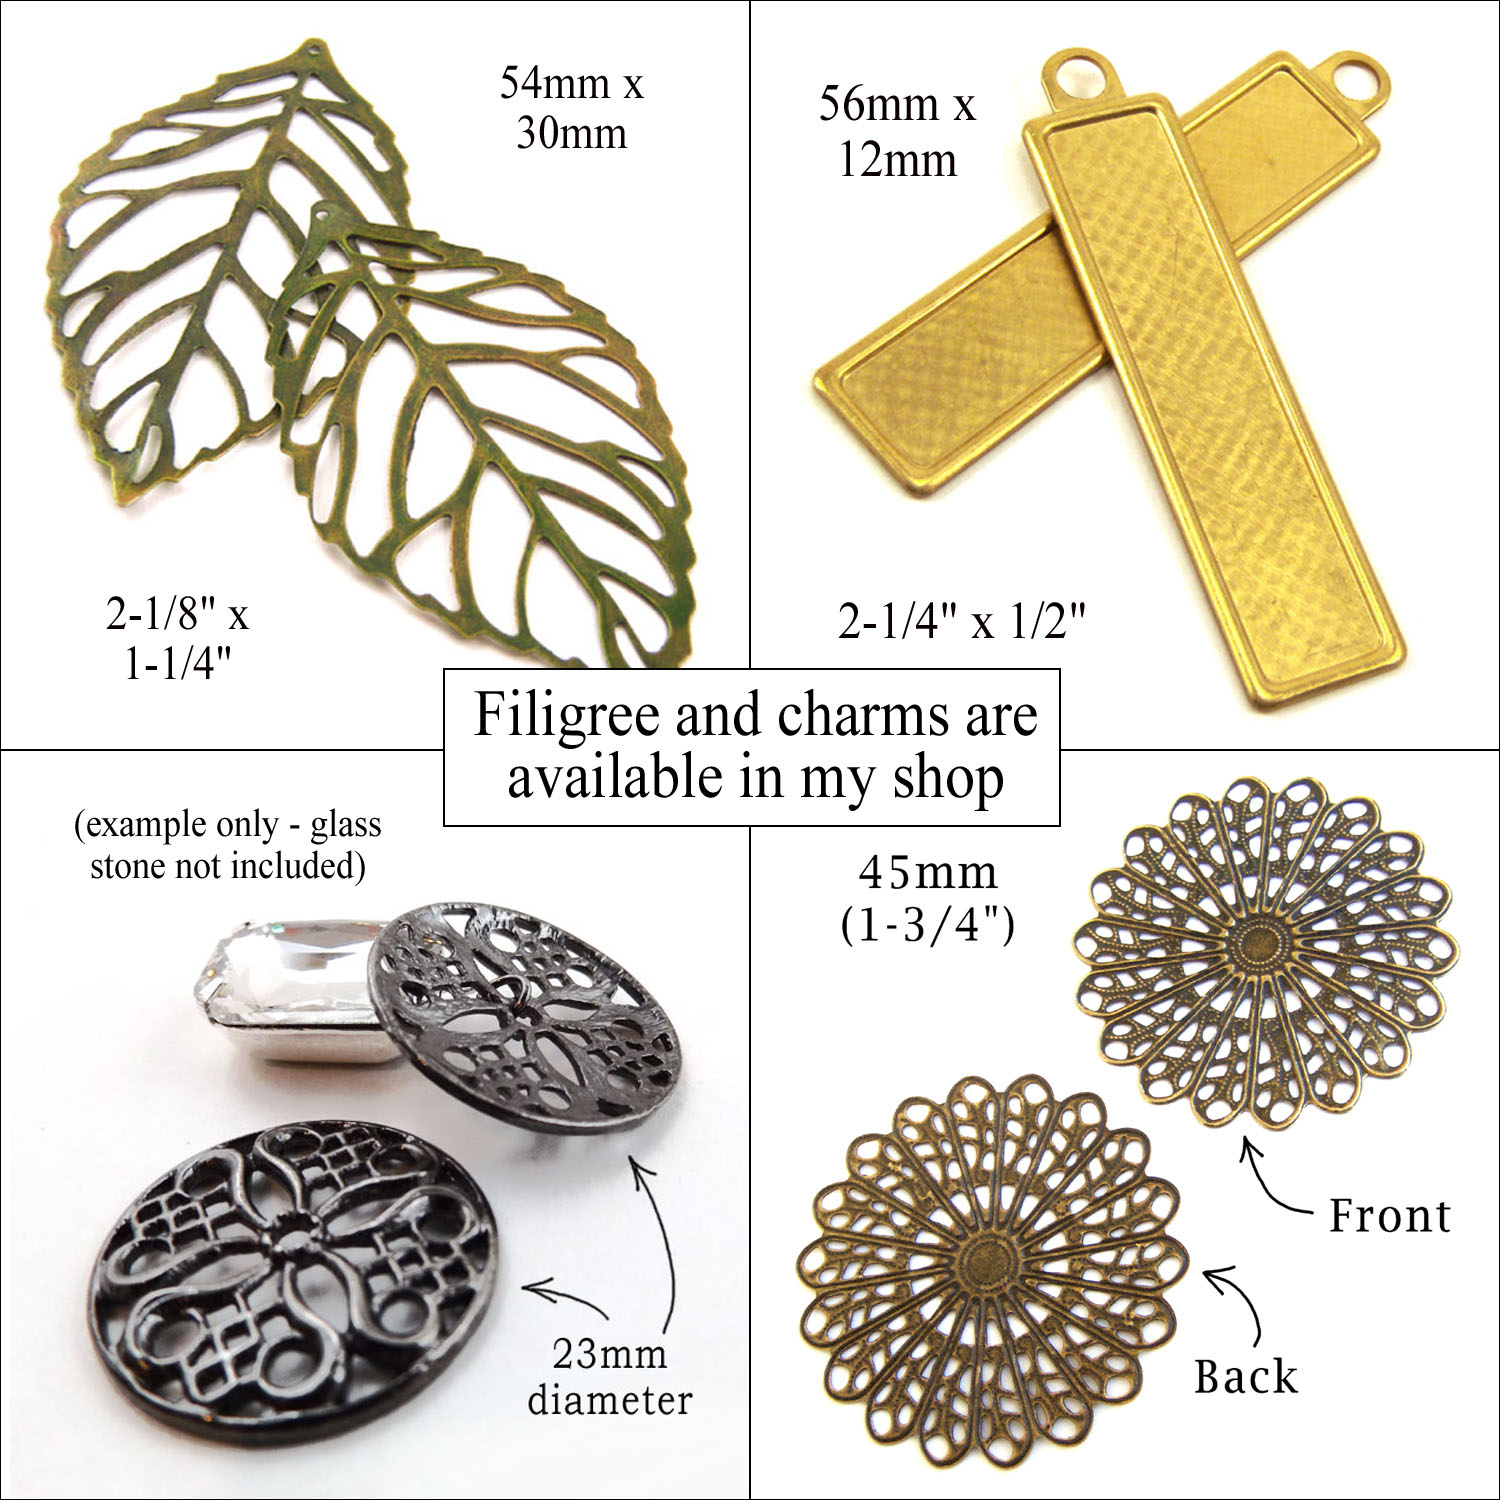 brass filigree and alloy charms available in my shop